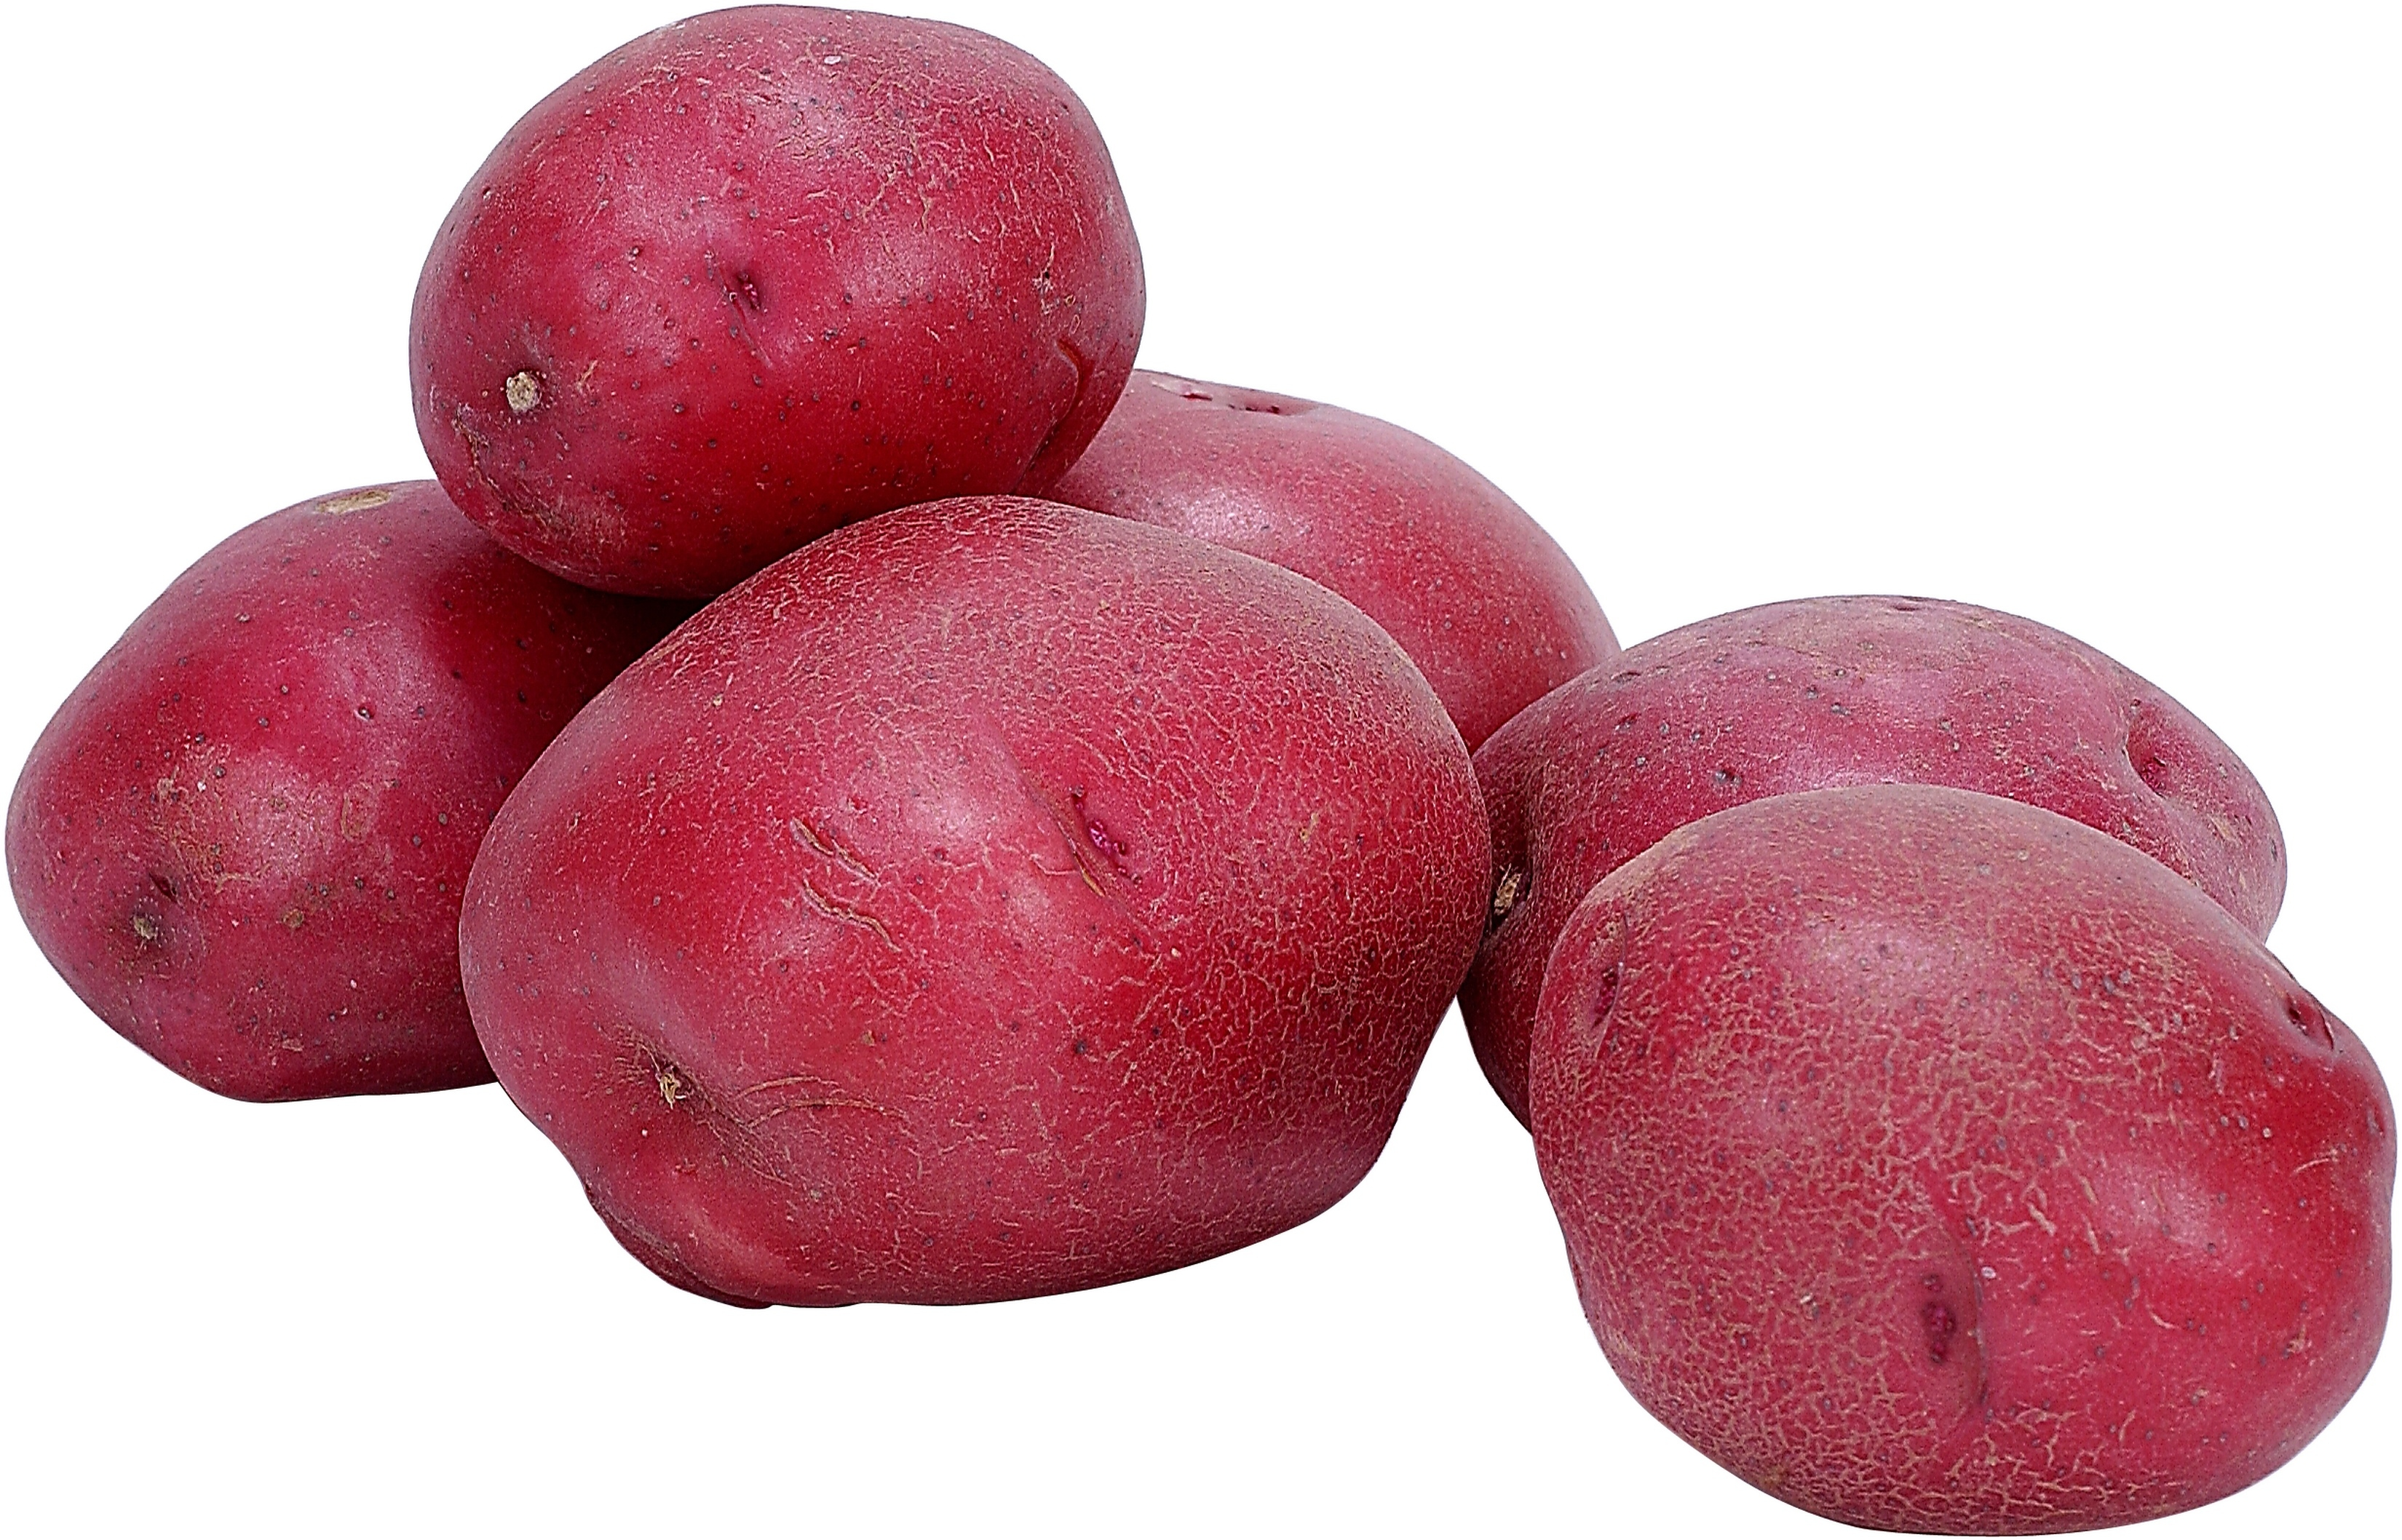 Salt potatoes are typically prepared from either red or white potatoes.